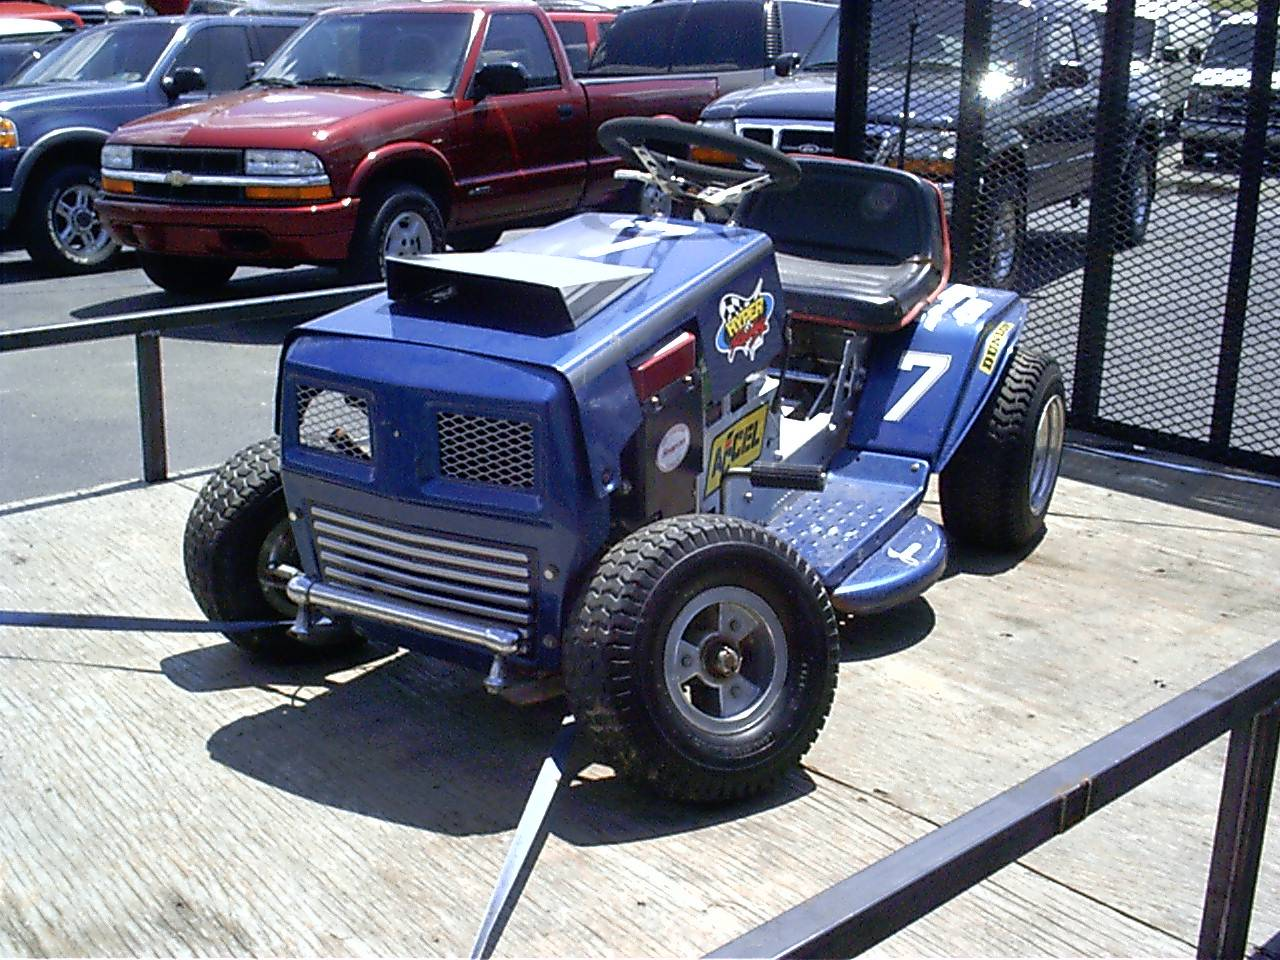 Click image for larger version  Name:Joshs%20Mower3.jpg Views:63 Size:217.1 KB ID:11804